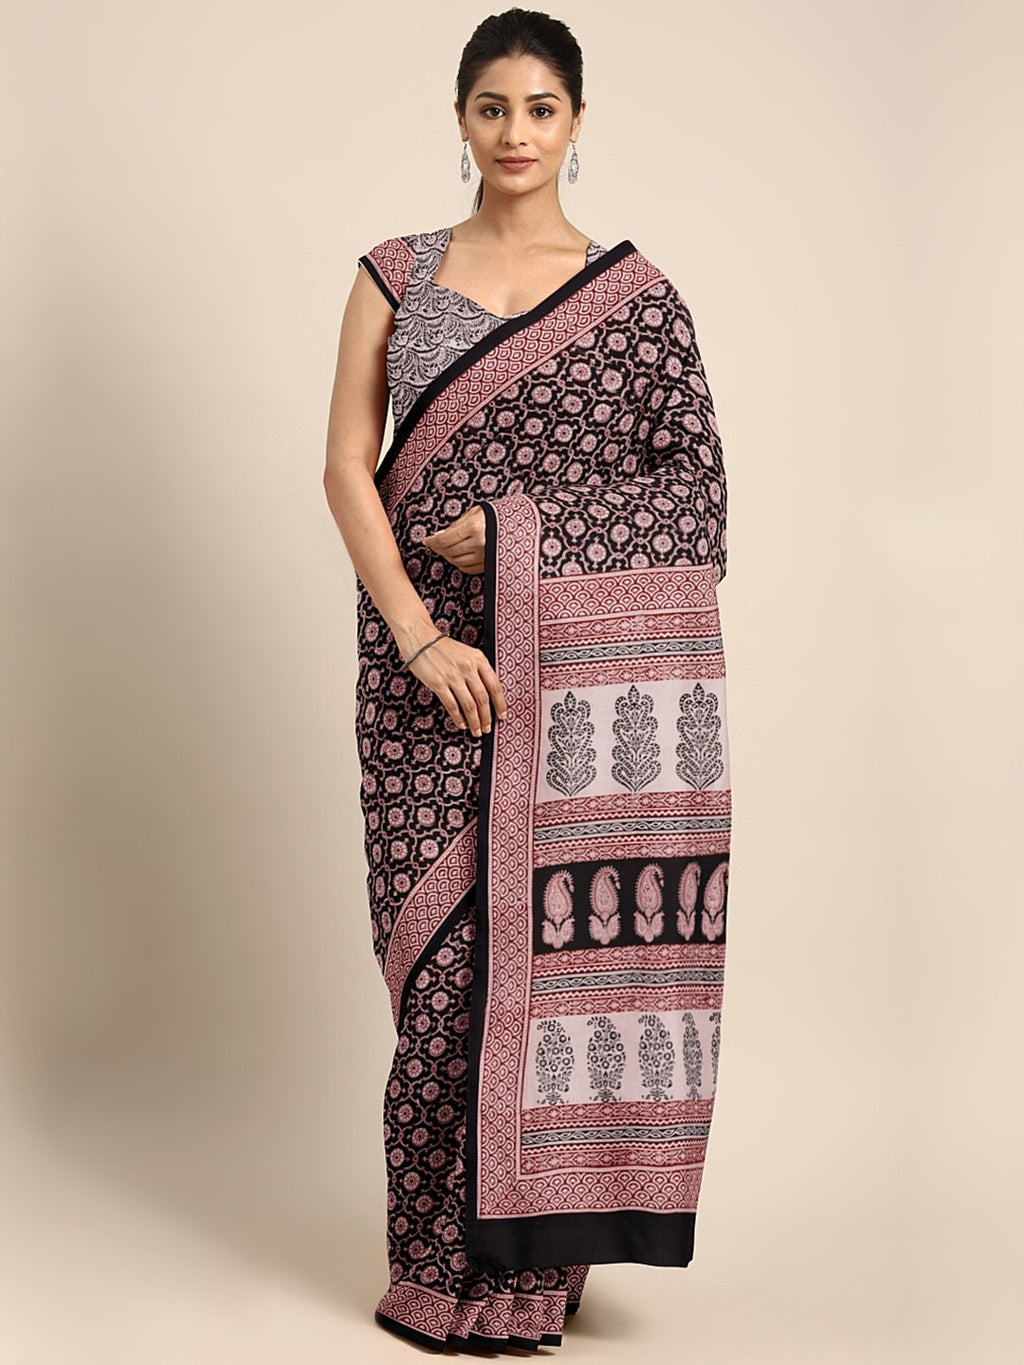 Black Maroon Handblock Print Saree-Saree-Kalakari India-MYBASA0016-Bagh, Cotton, Geographical Indication, Hand Blocks, Hand Crafted, Heritage Prints, Natural Dyes, Sarees, Sustainable Fabrics-[Linen,Ethnic,wear,Fashionista,Handloom,Handicraft,Indigo,blockprint,block,print,Cotton,Chanderi,Blue, latest,classy,party,bollywood,trendy,summer,style,traditional,formal,elegant,unique,style,hand,block,print, dabu,booti,gift,present,glamorous,affordable,collectible,Sari,Saree,printed, holi, Diwali, birthd